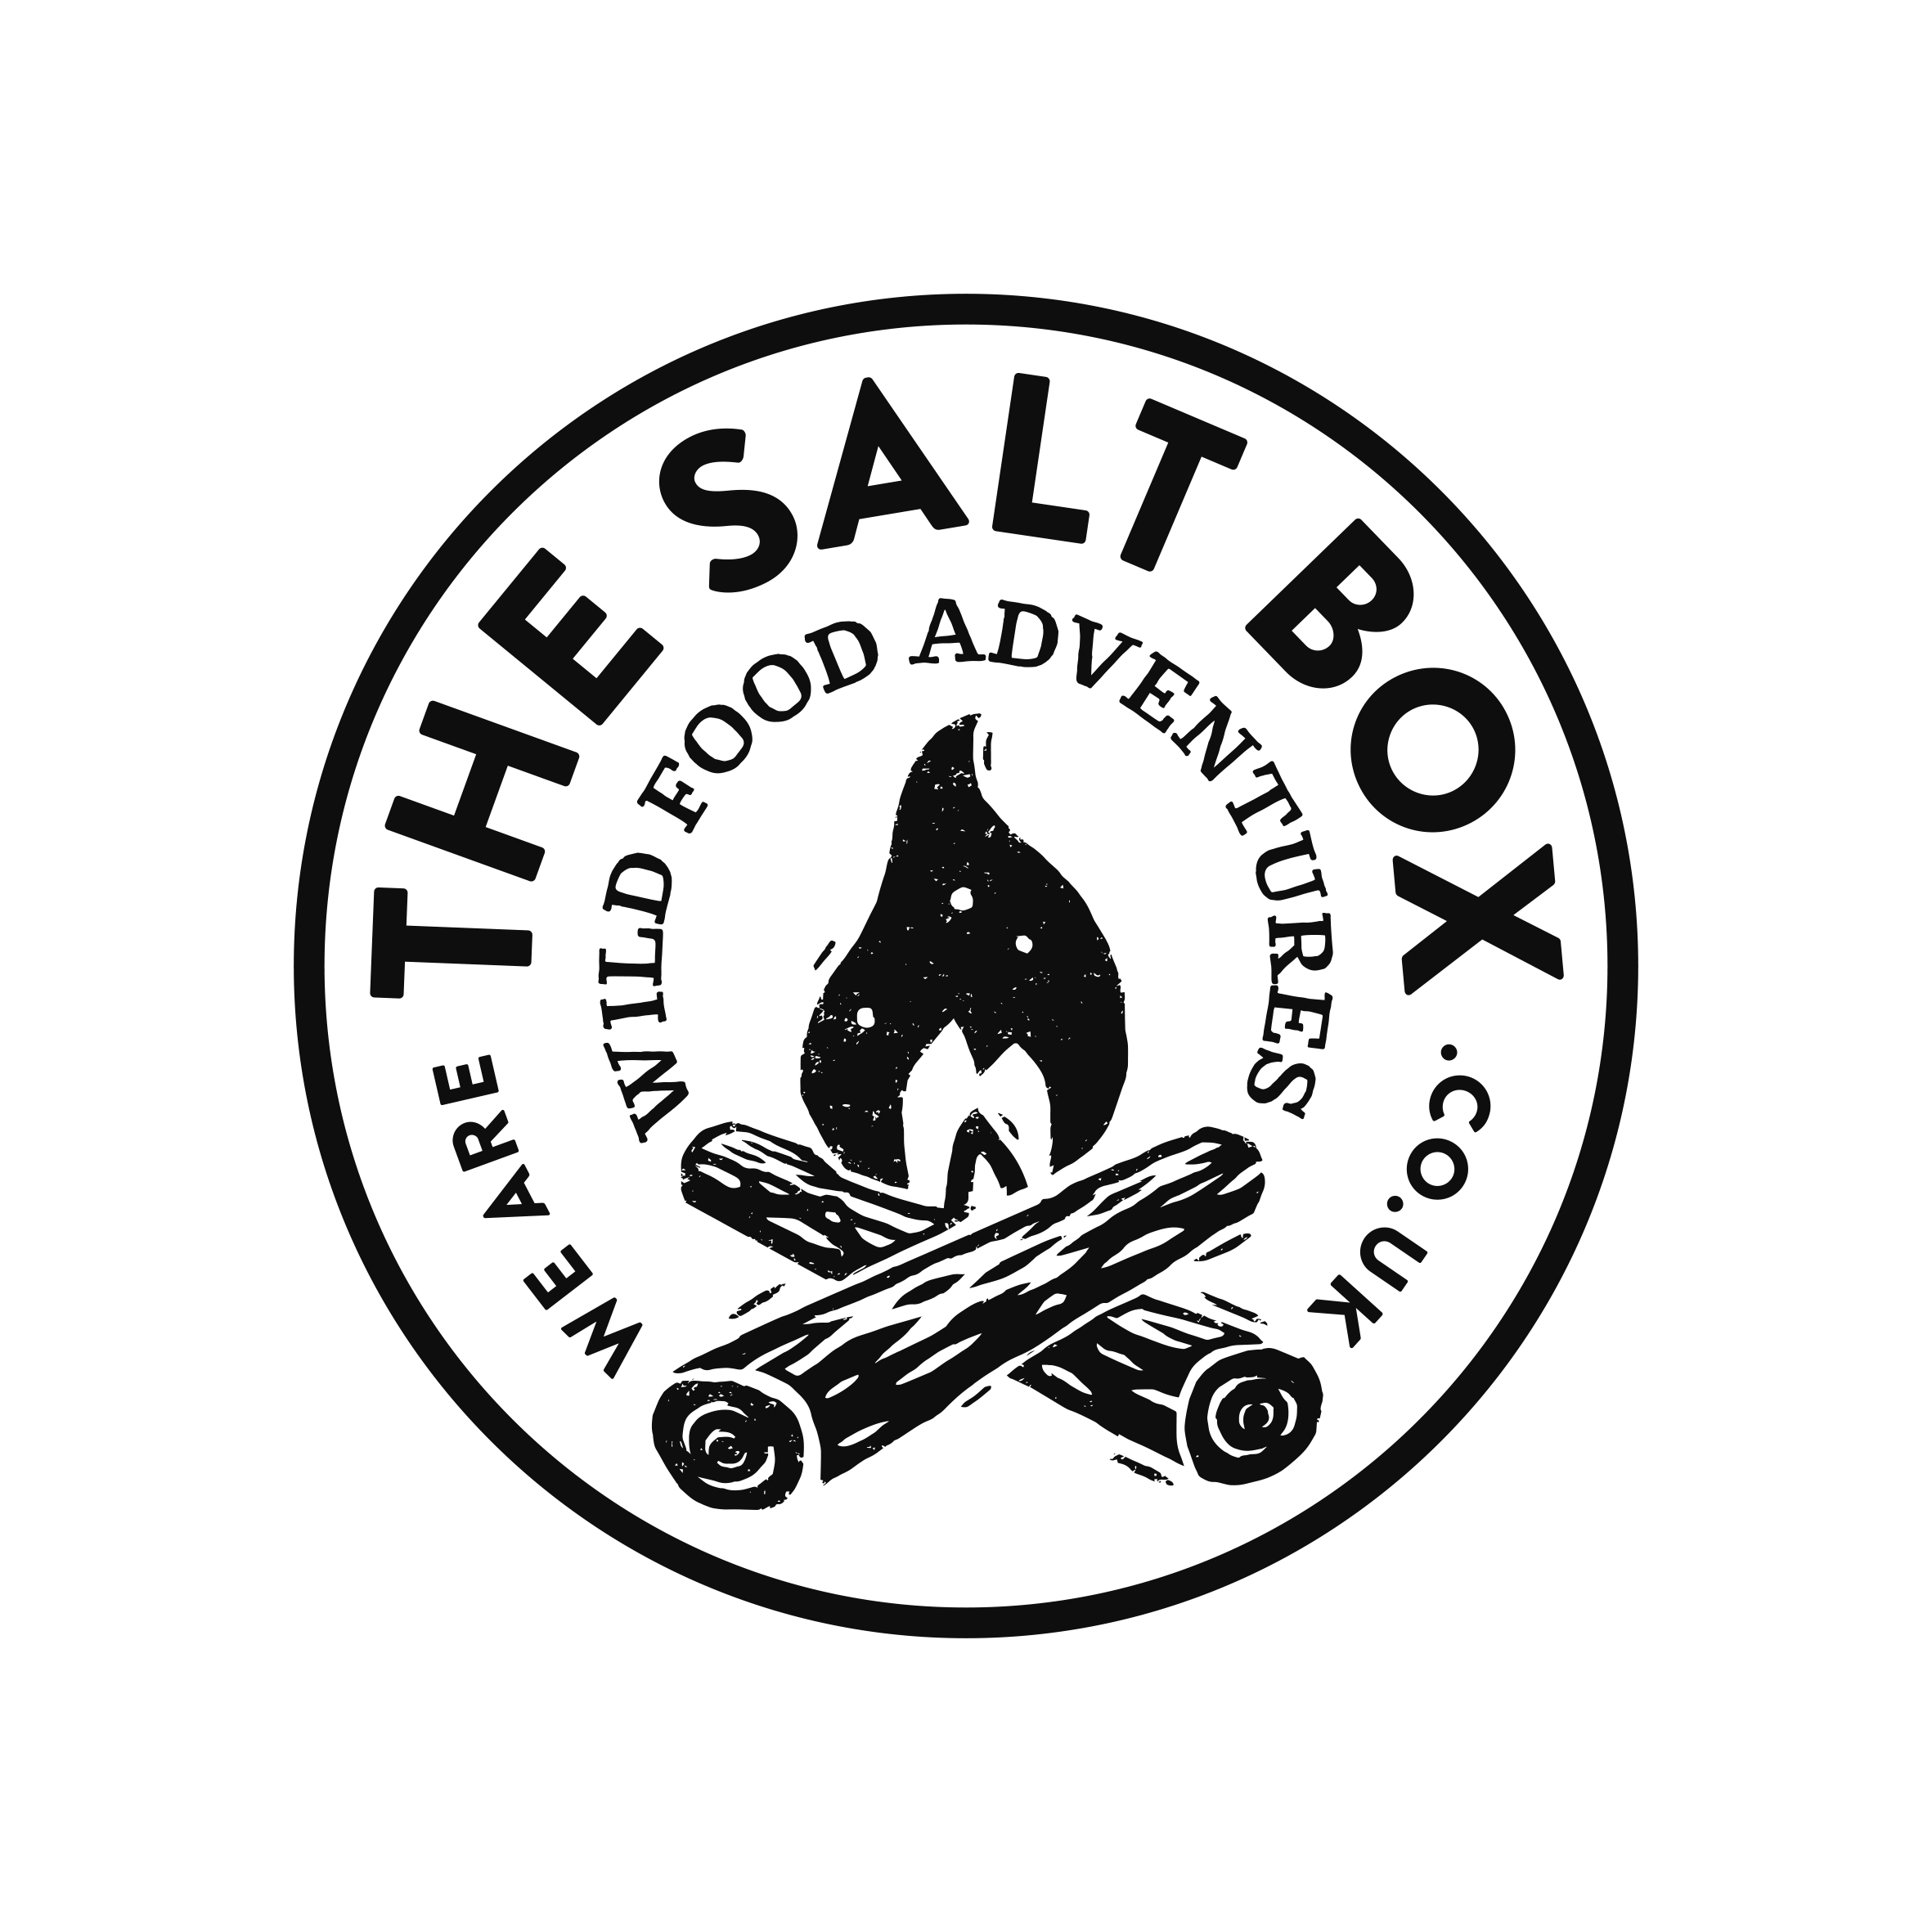 The Salt Box in